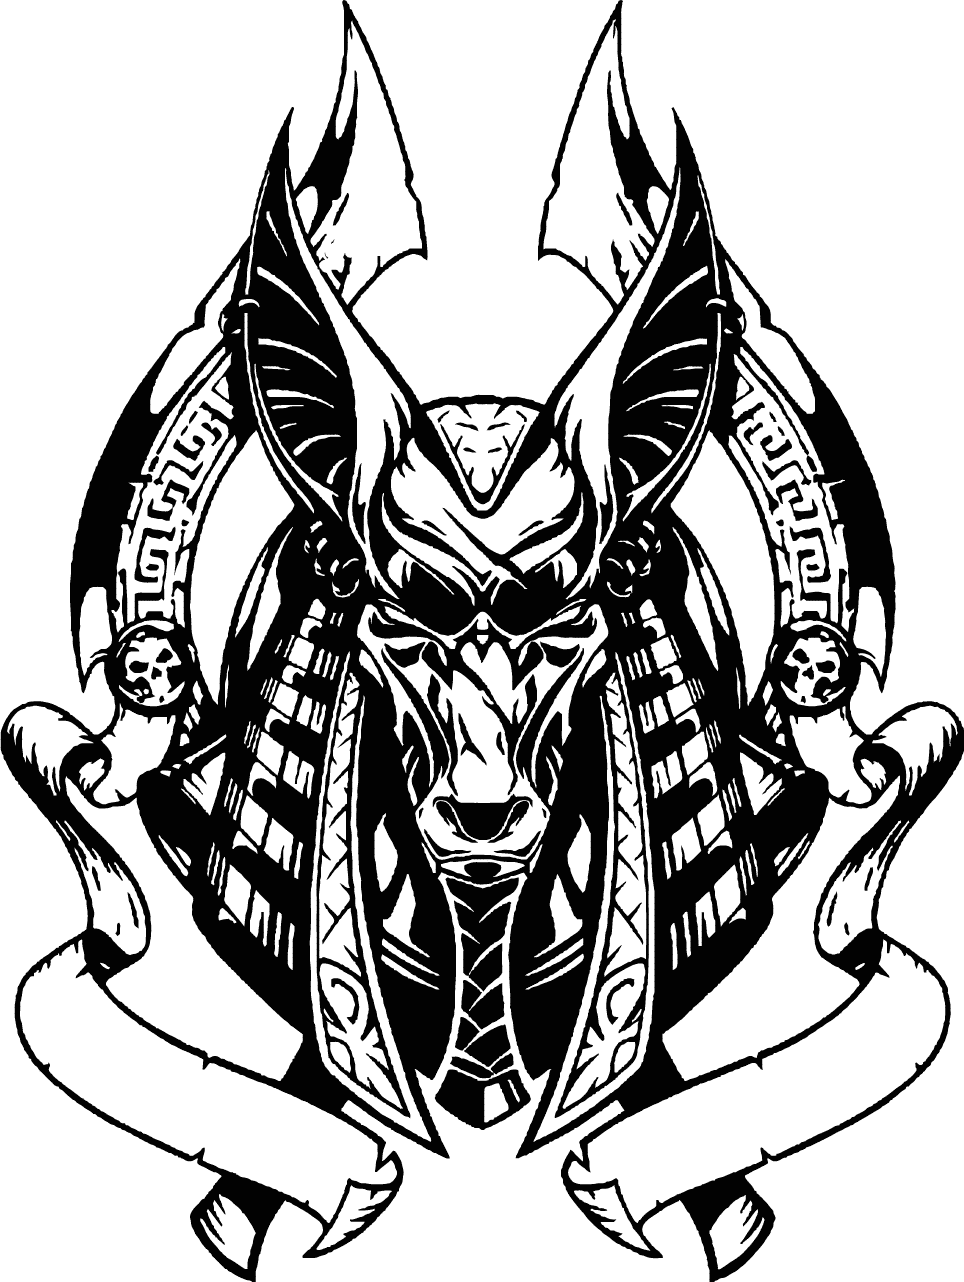 Anubis, Egyptian God of Afterlife - The Patron God of Lost Souls in Egyptian Mythology